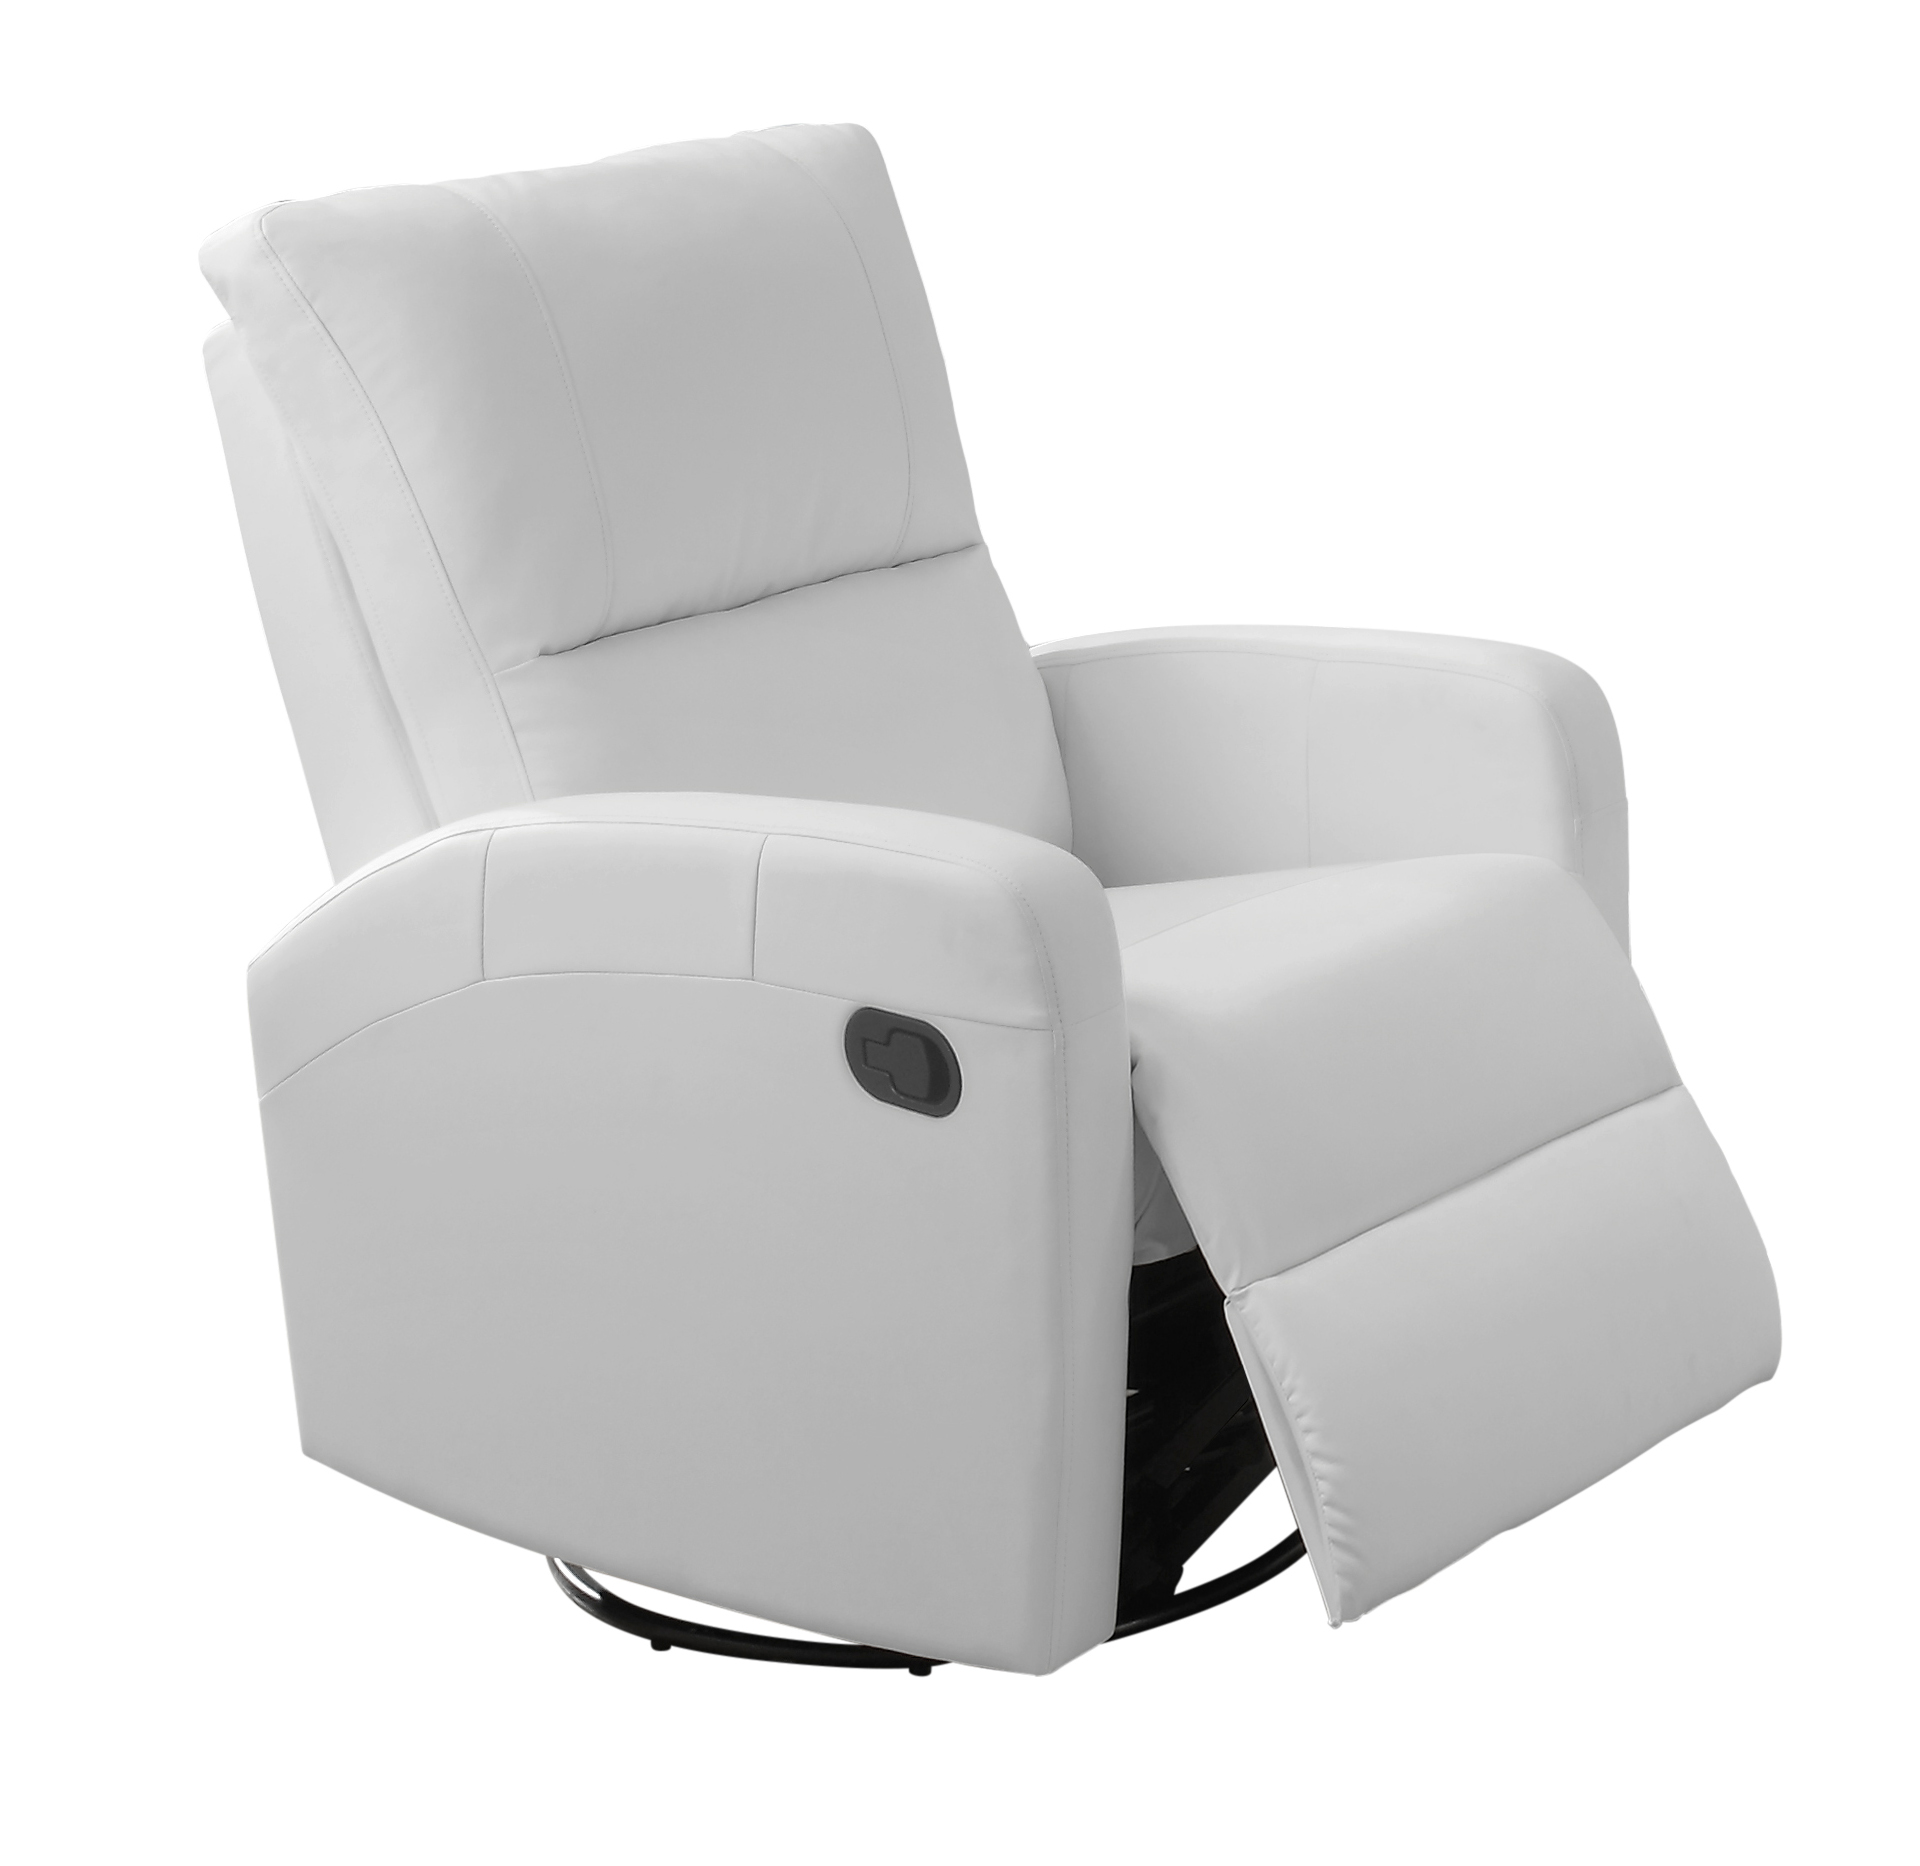 Recliner - Swivel Glider / White Bonded Leather